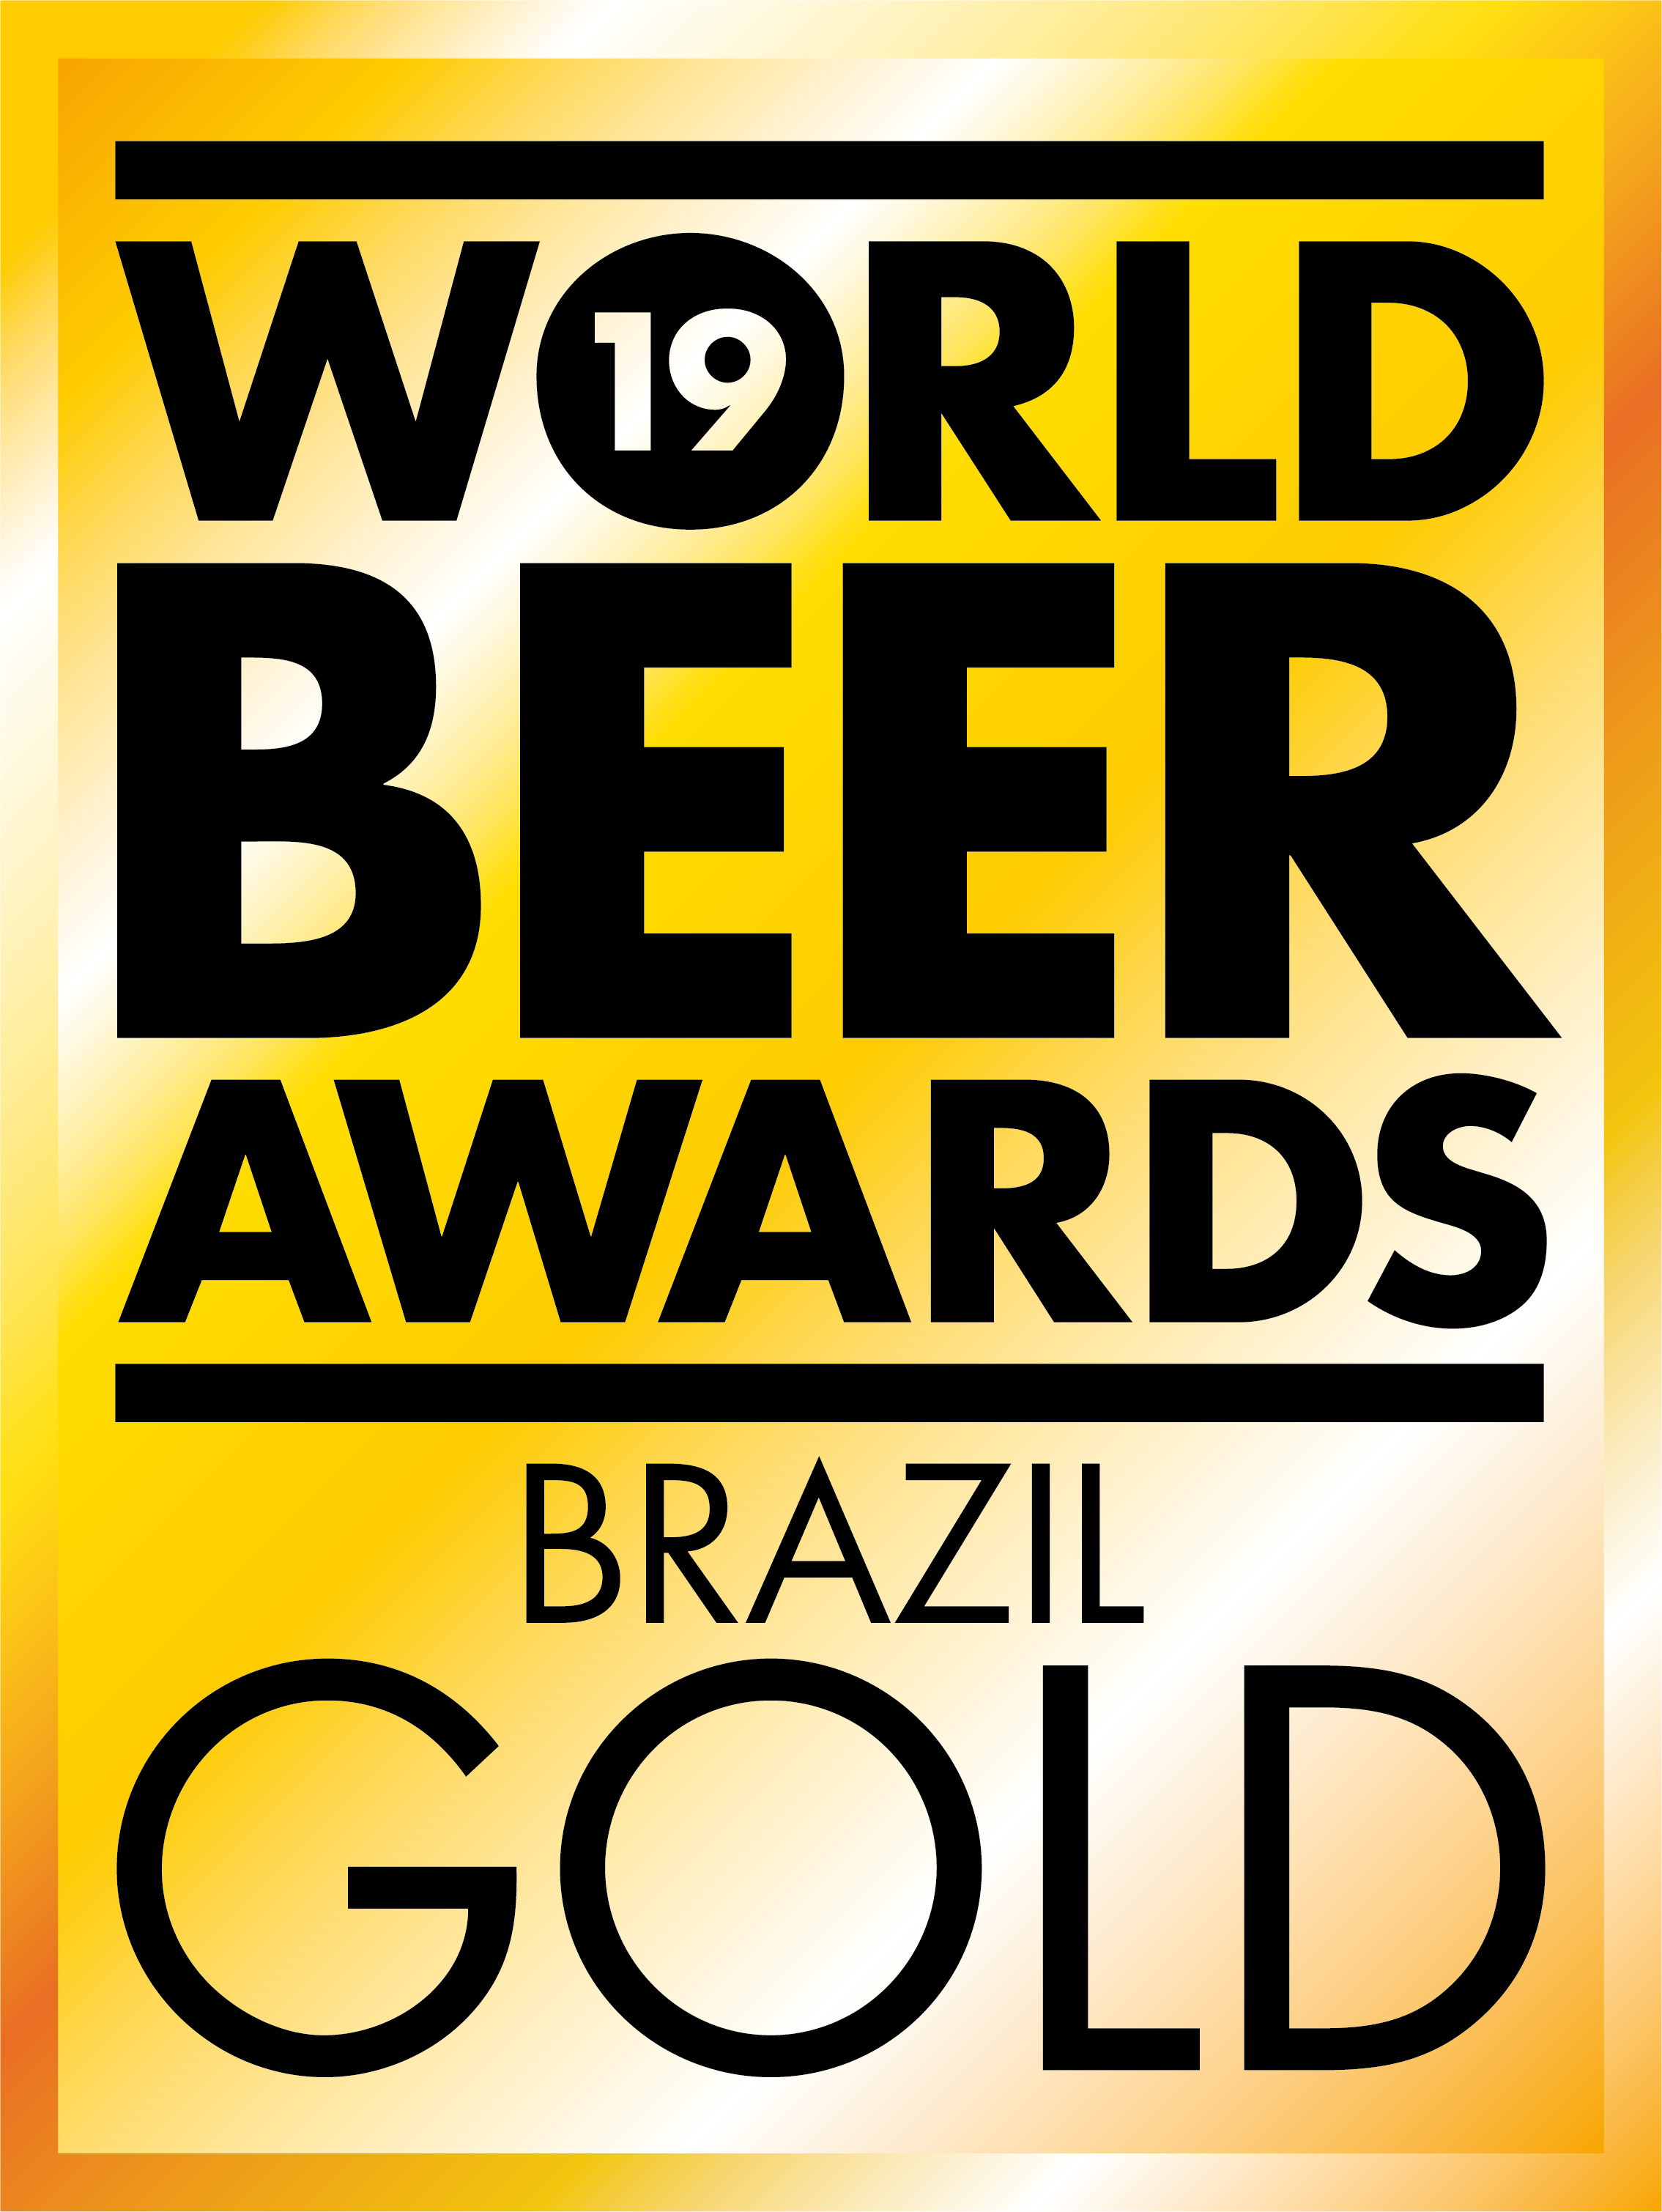 World Beer Awards 2019 - GOLD